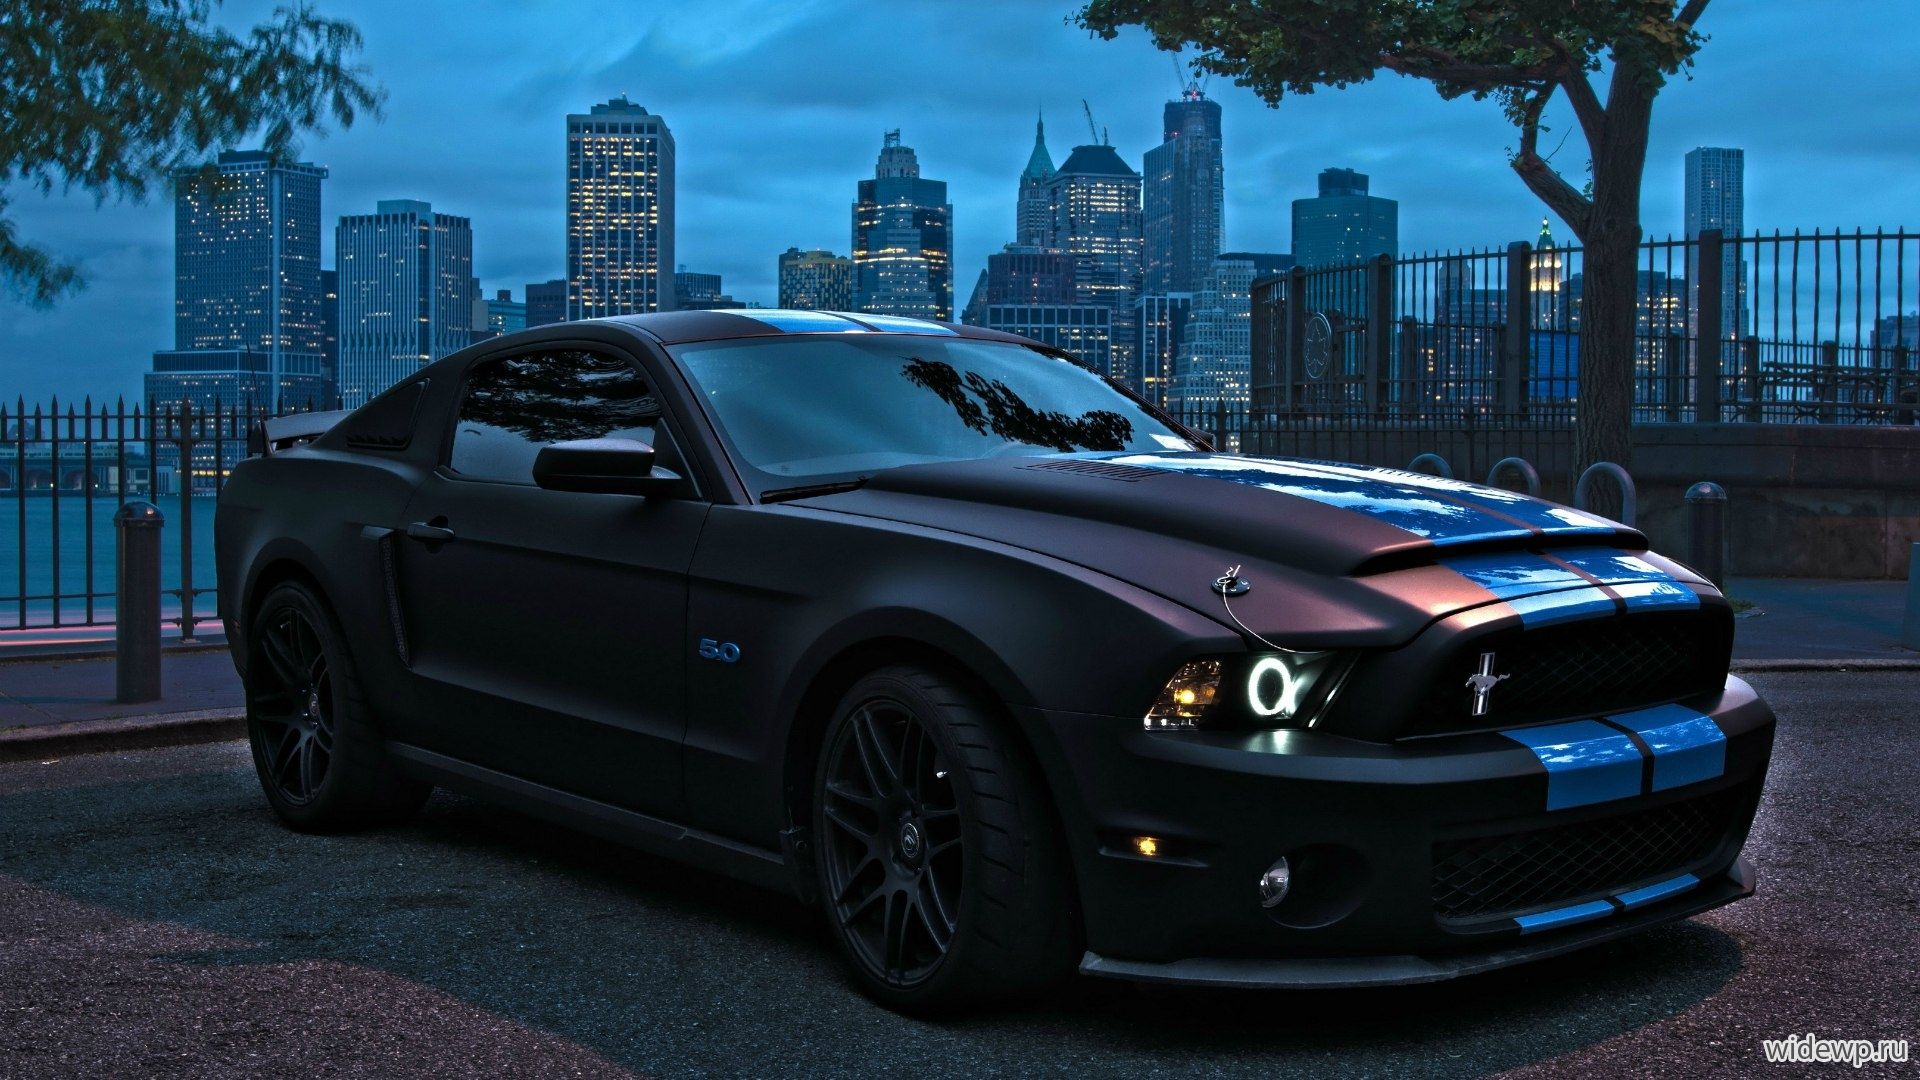 Автомобили Ford Mustang GT 5.0